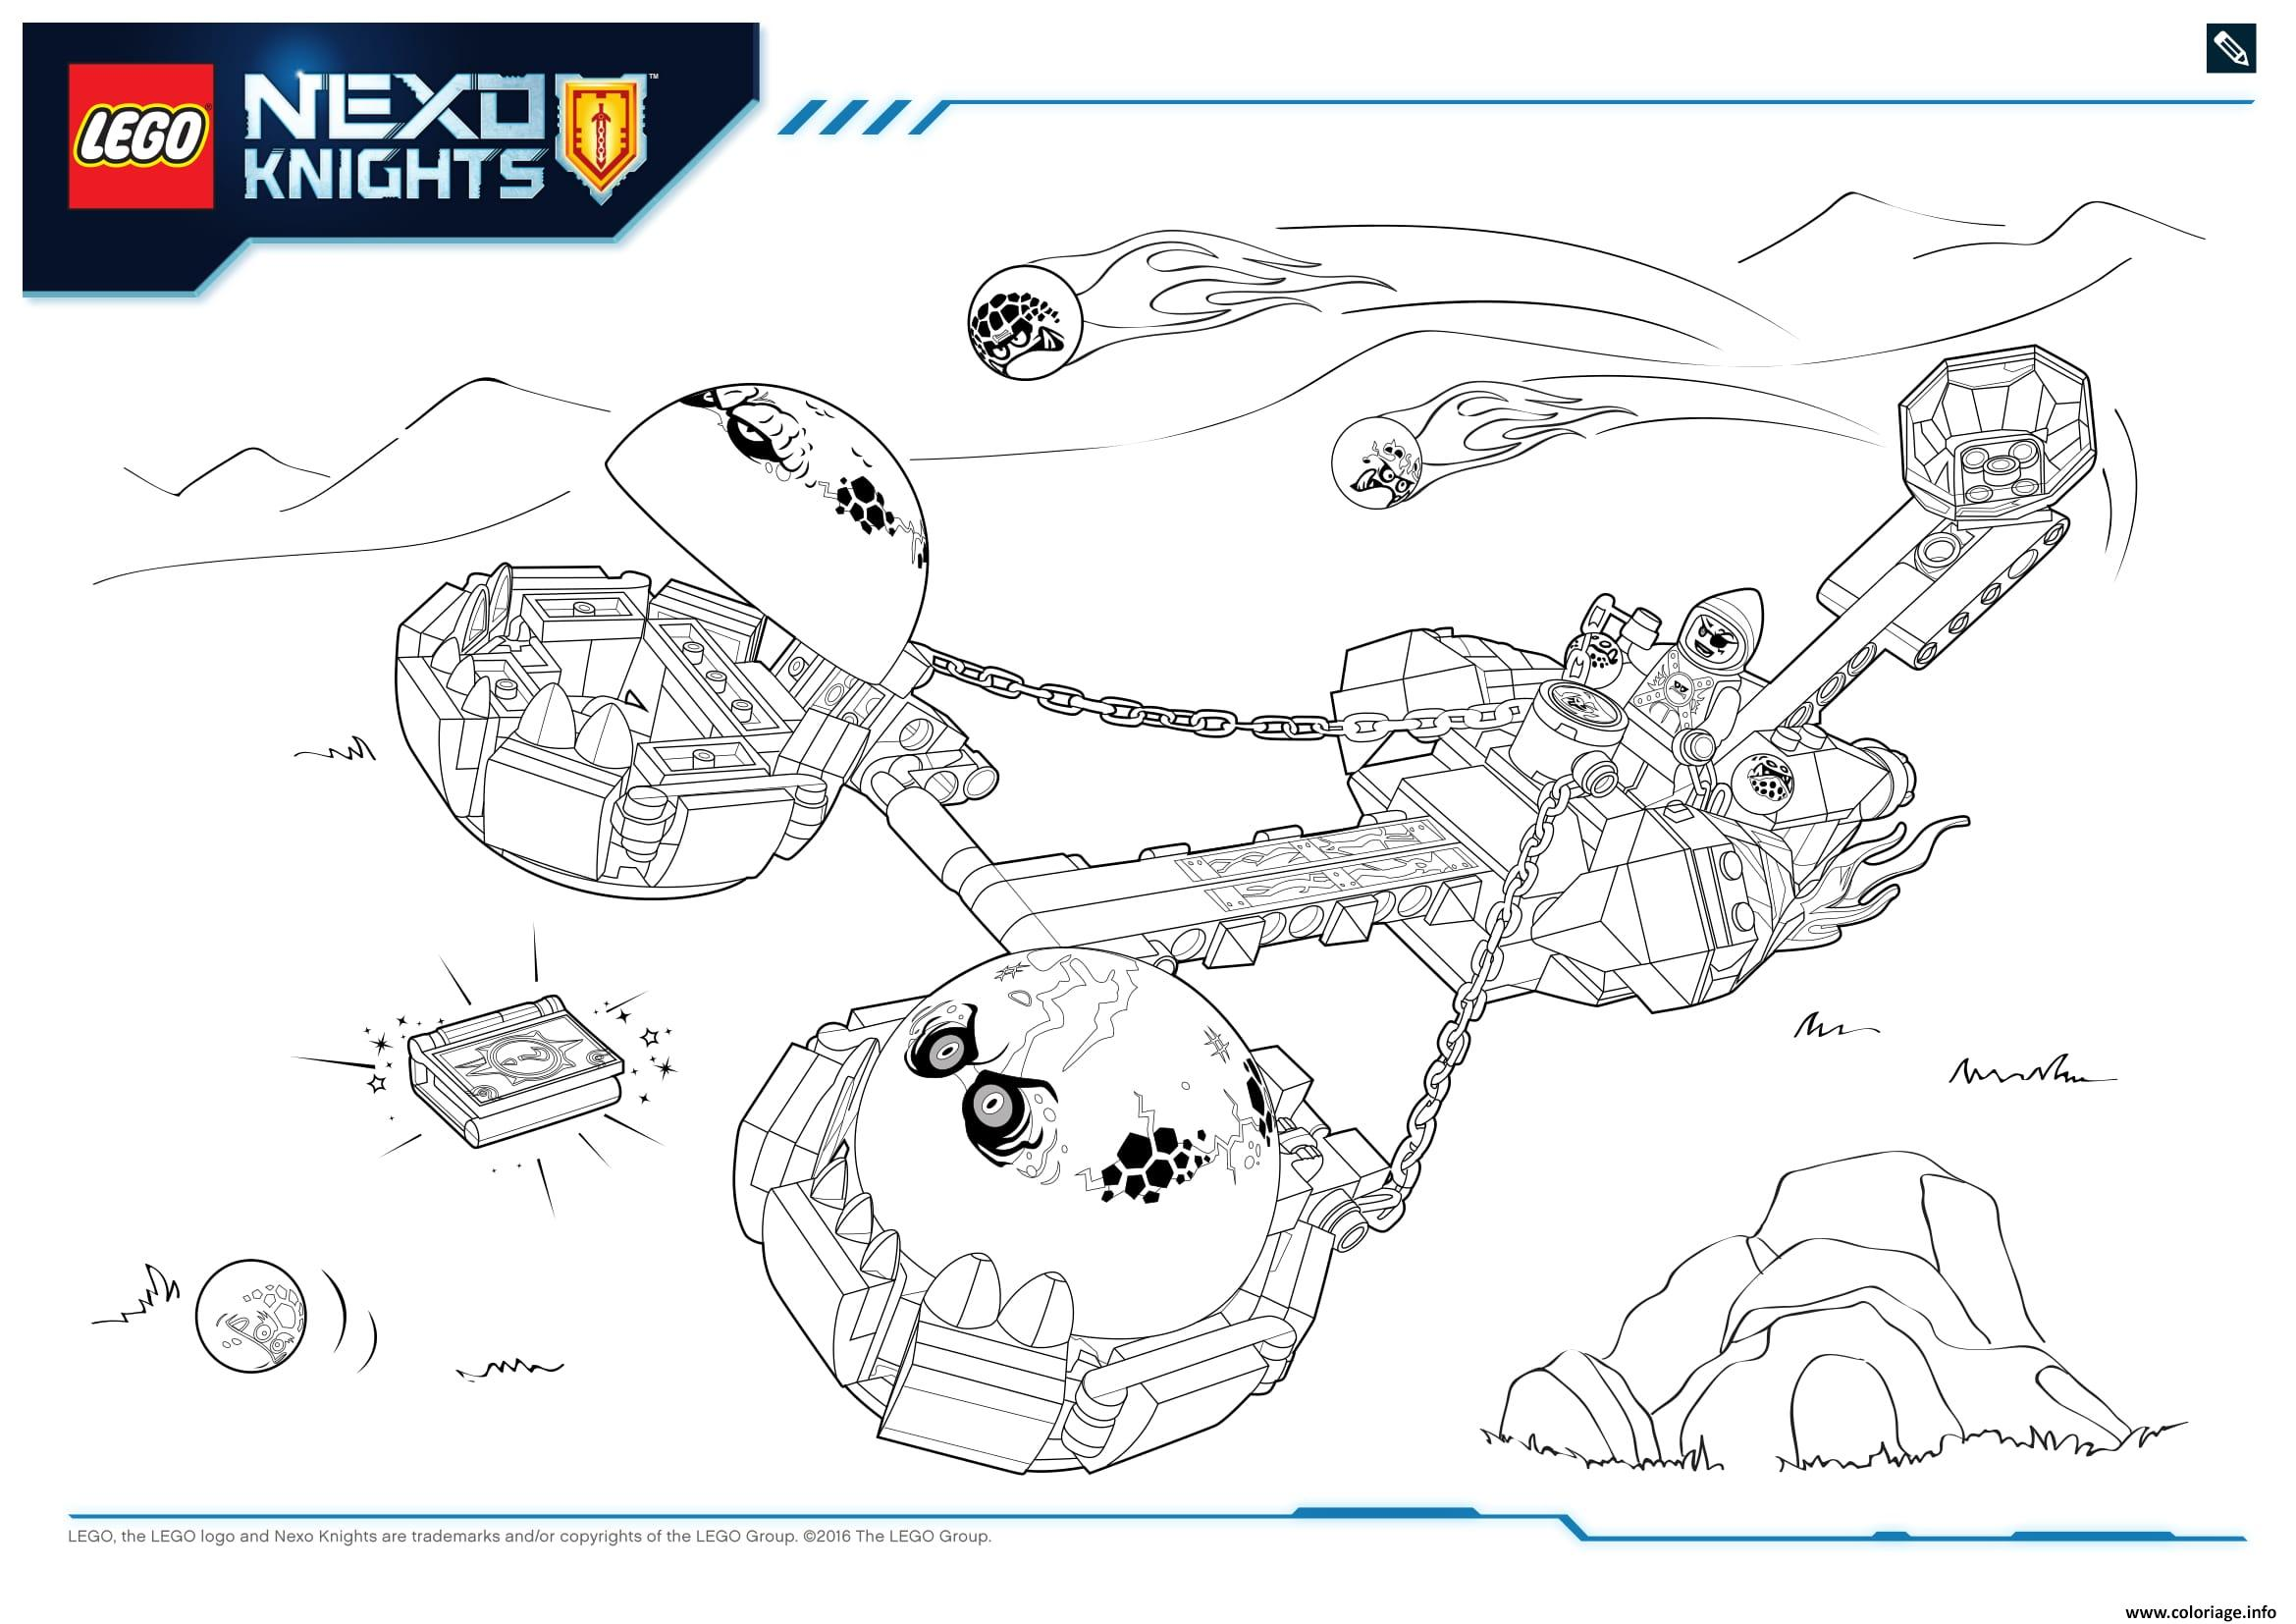 Coloriage Lego Nexo Knights Monster Productss 2 Dessin à Imprimer